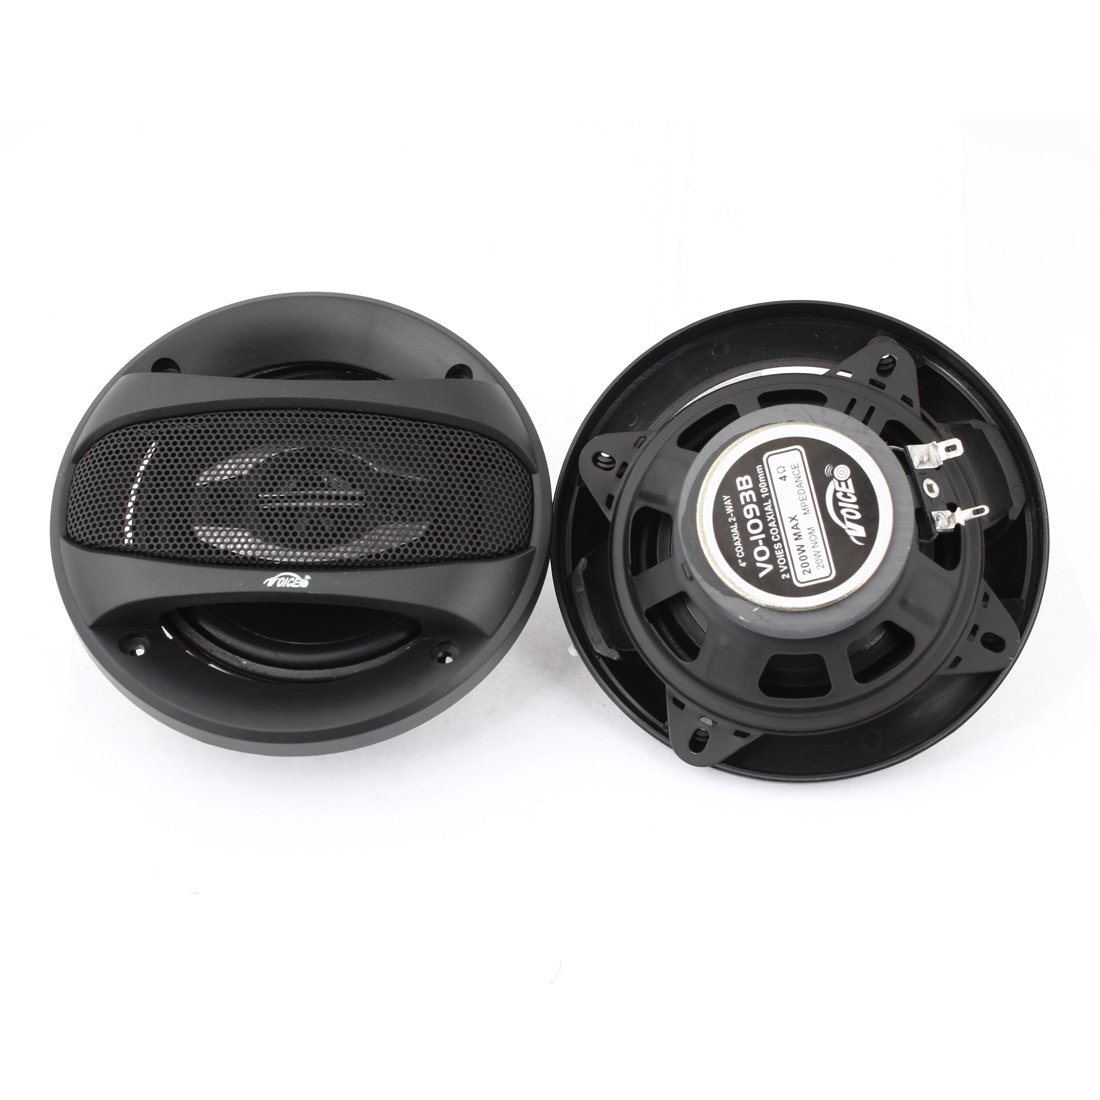 2 Pcs Black Stereo Audio System Speakers 200W for Car Auto